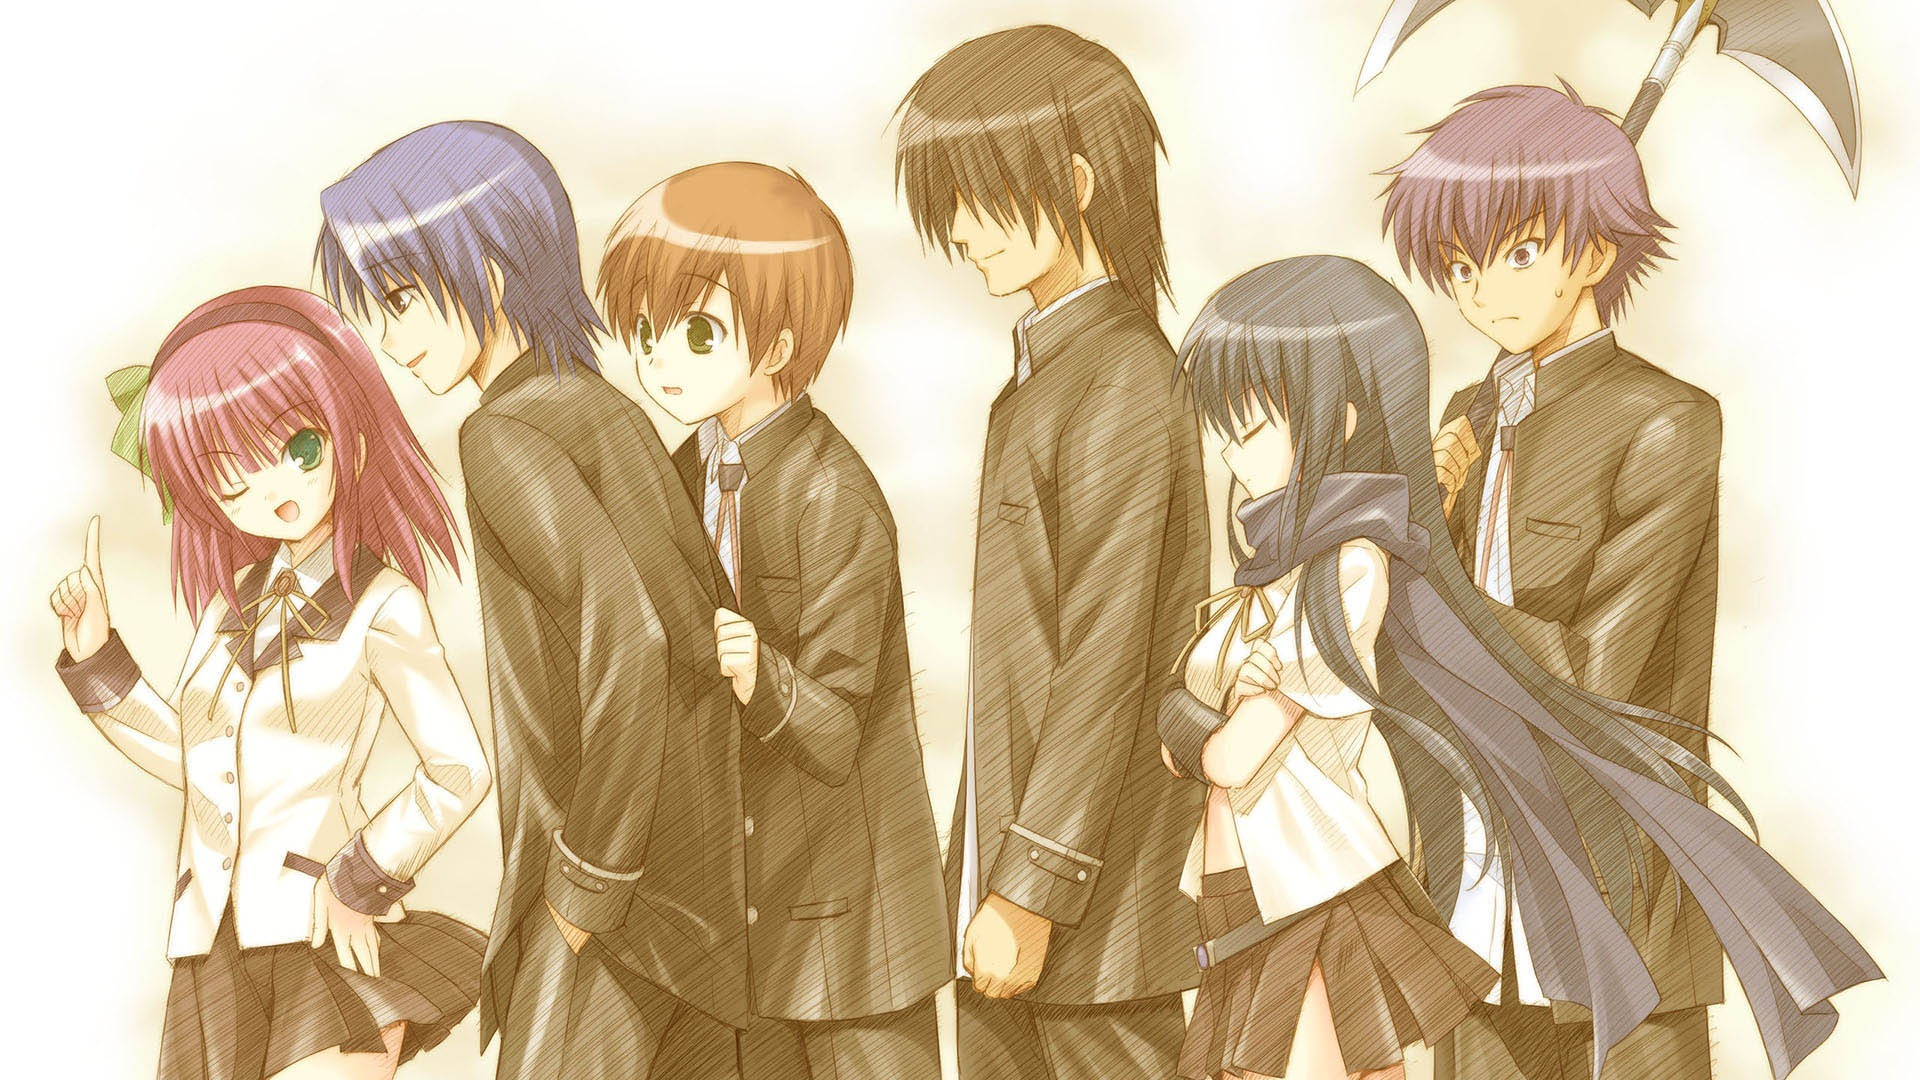 New Images Released For Angel Beats! Visual Novel 4